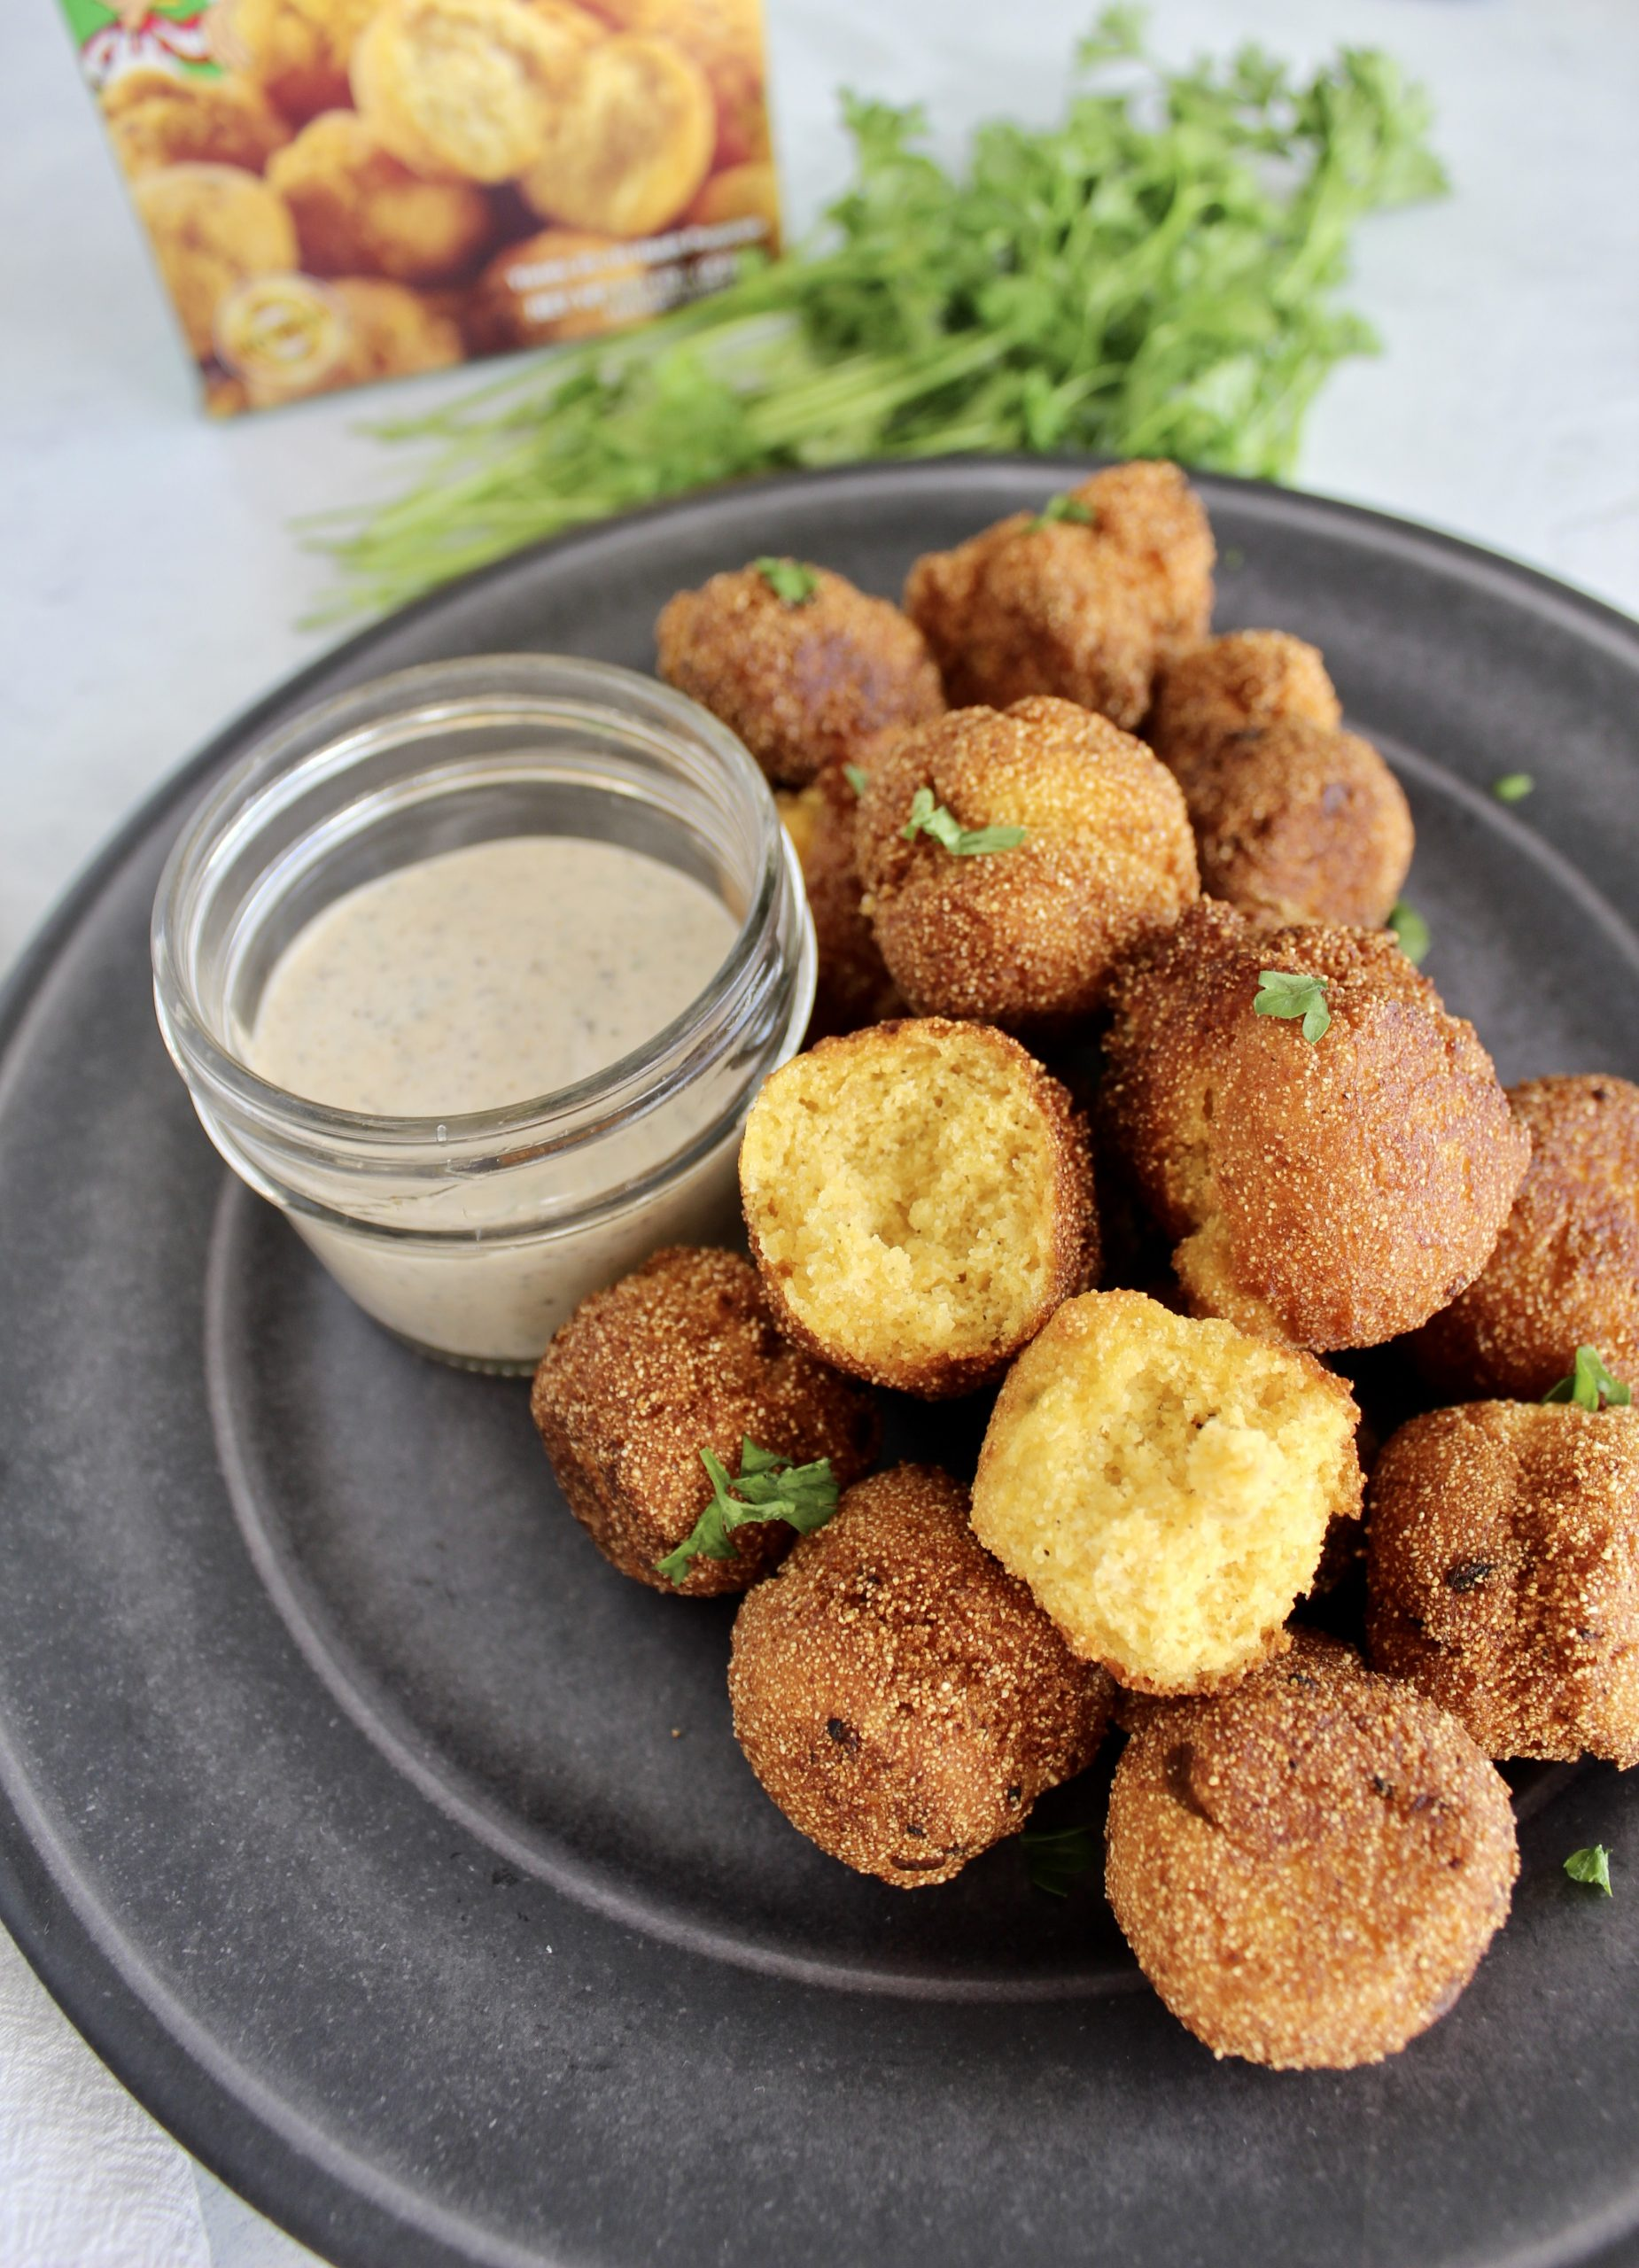 Green Chile Hush Puppies with Garlic Aioli